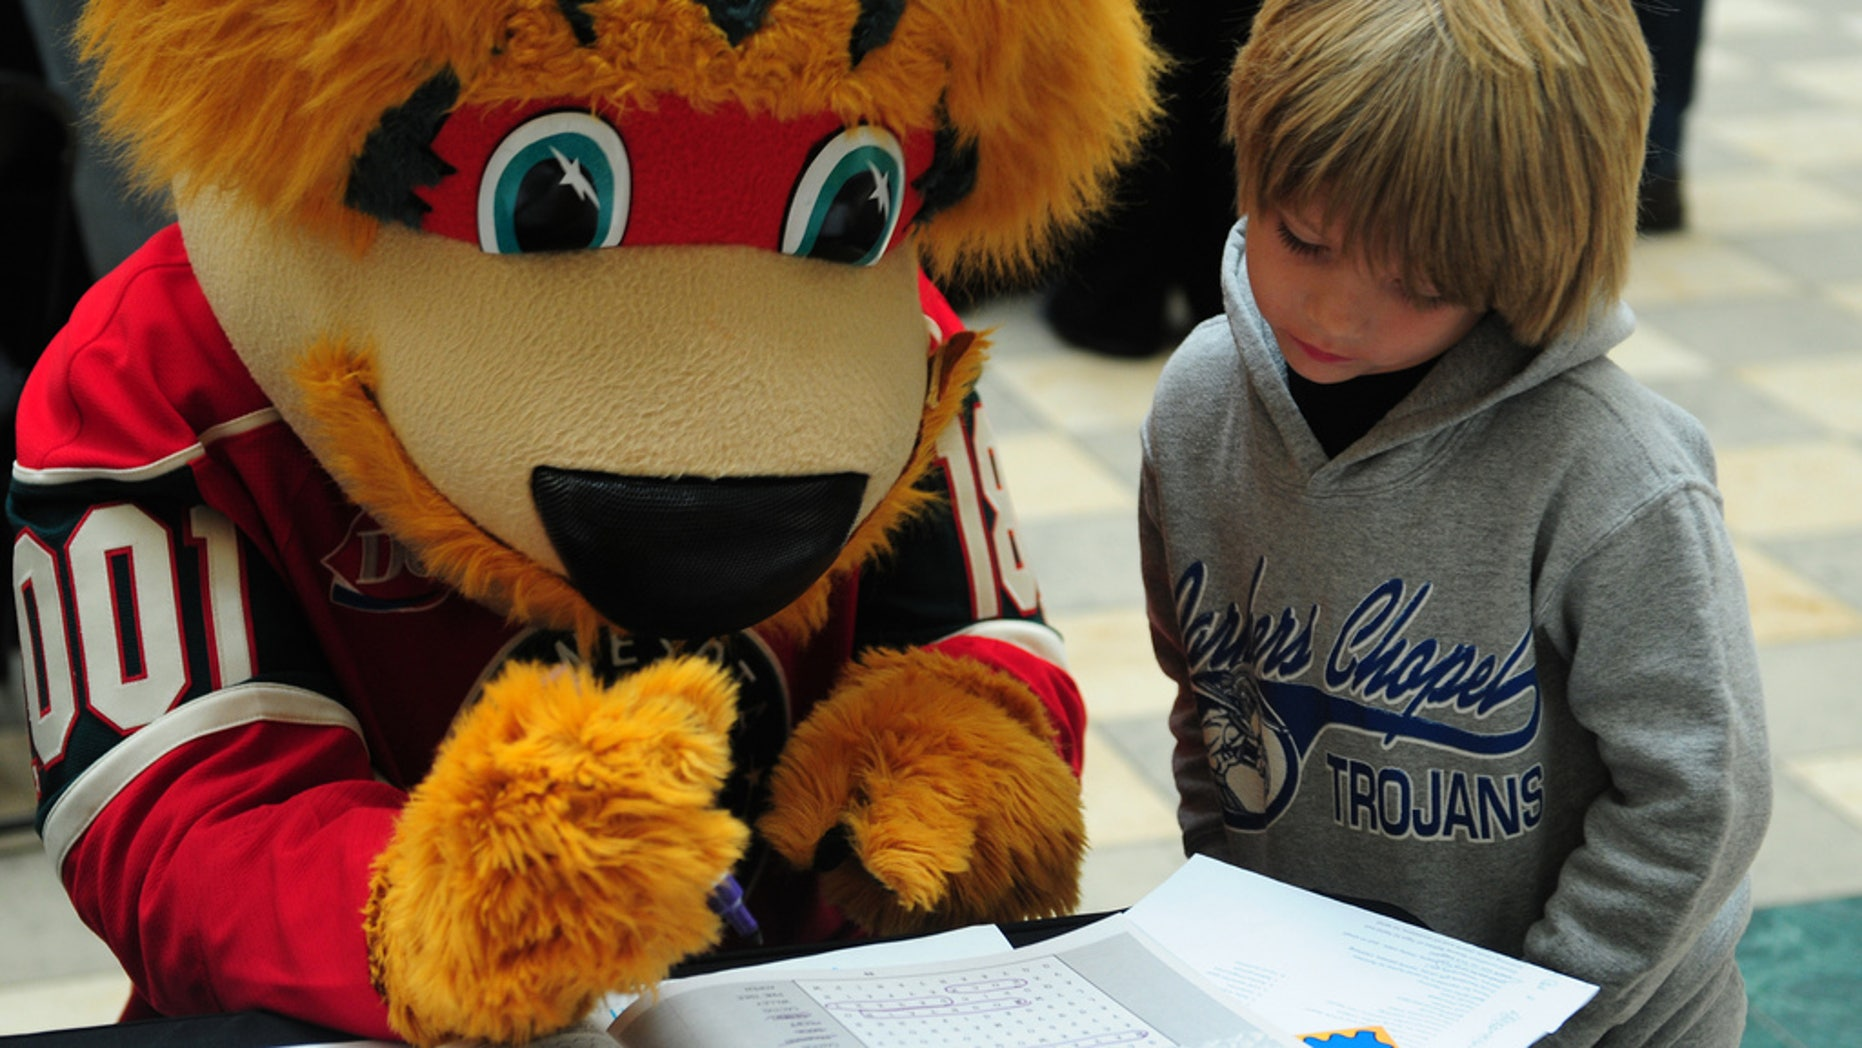 Nordy, the Minnesota Wild mascot, helps a youngster work on a word find during a post office event in 2013.